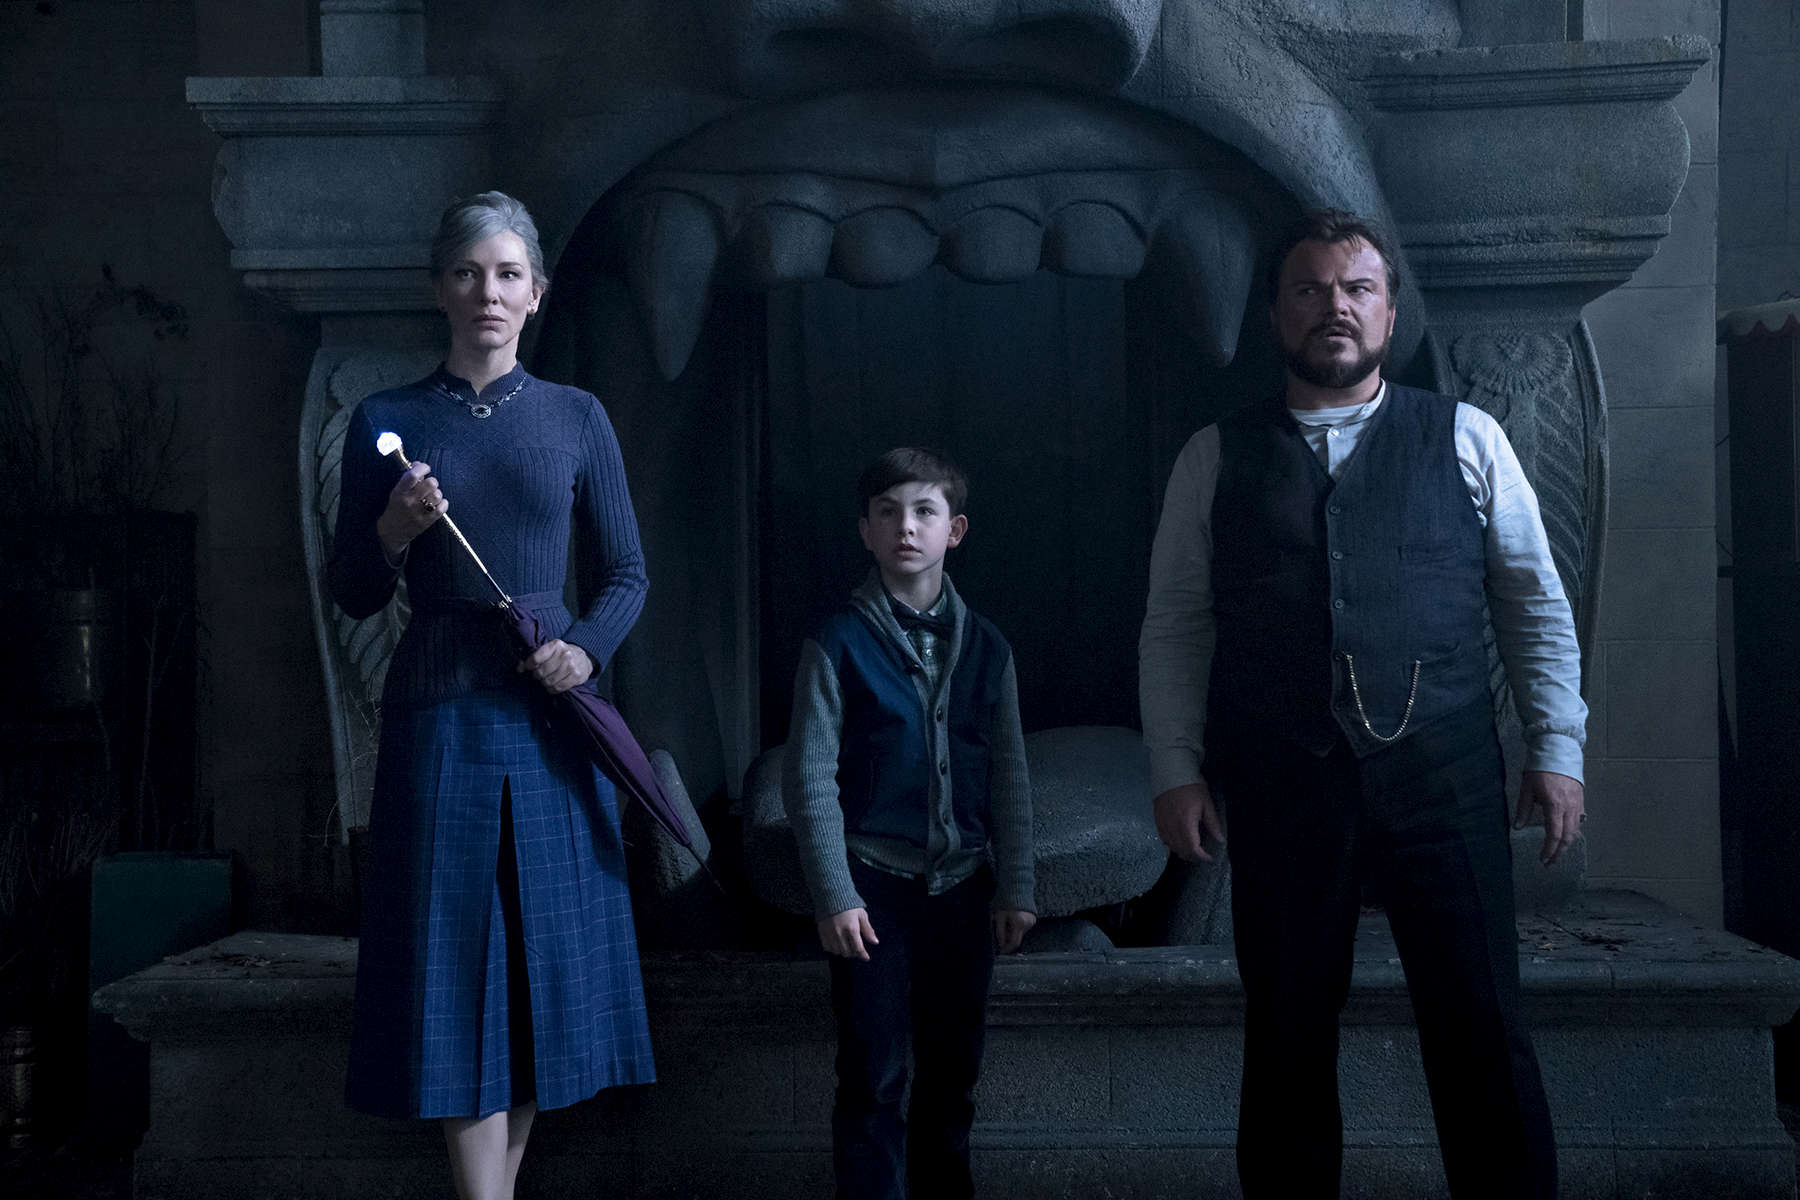 (L to R) CATE BLANCHETT, OWEN VACCARO and JACK BLACK star in The House with a Clock in Its Walls, from Amblin Entertainment.  The magical adventure tells the spine-tingling tale of 10-year-old Lewis (Vaccaro) who goes to live with his uncle (Black) in a creaky old house with a mysterious tick-tocking heart.  But his new town's sleepy façade jolts to life with a secret world of warlocks and witches when Lewis accidentally awakens the dead.